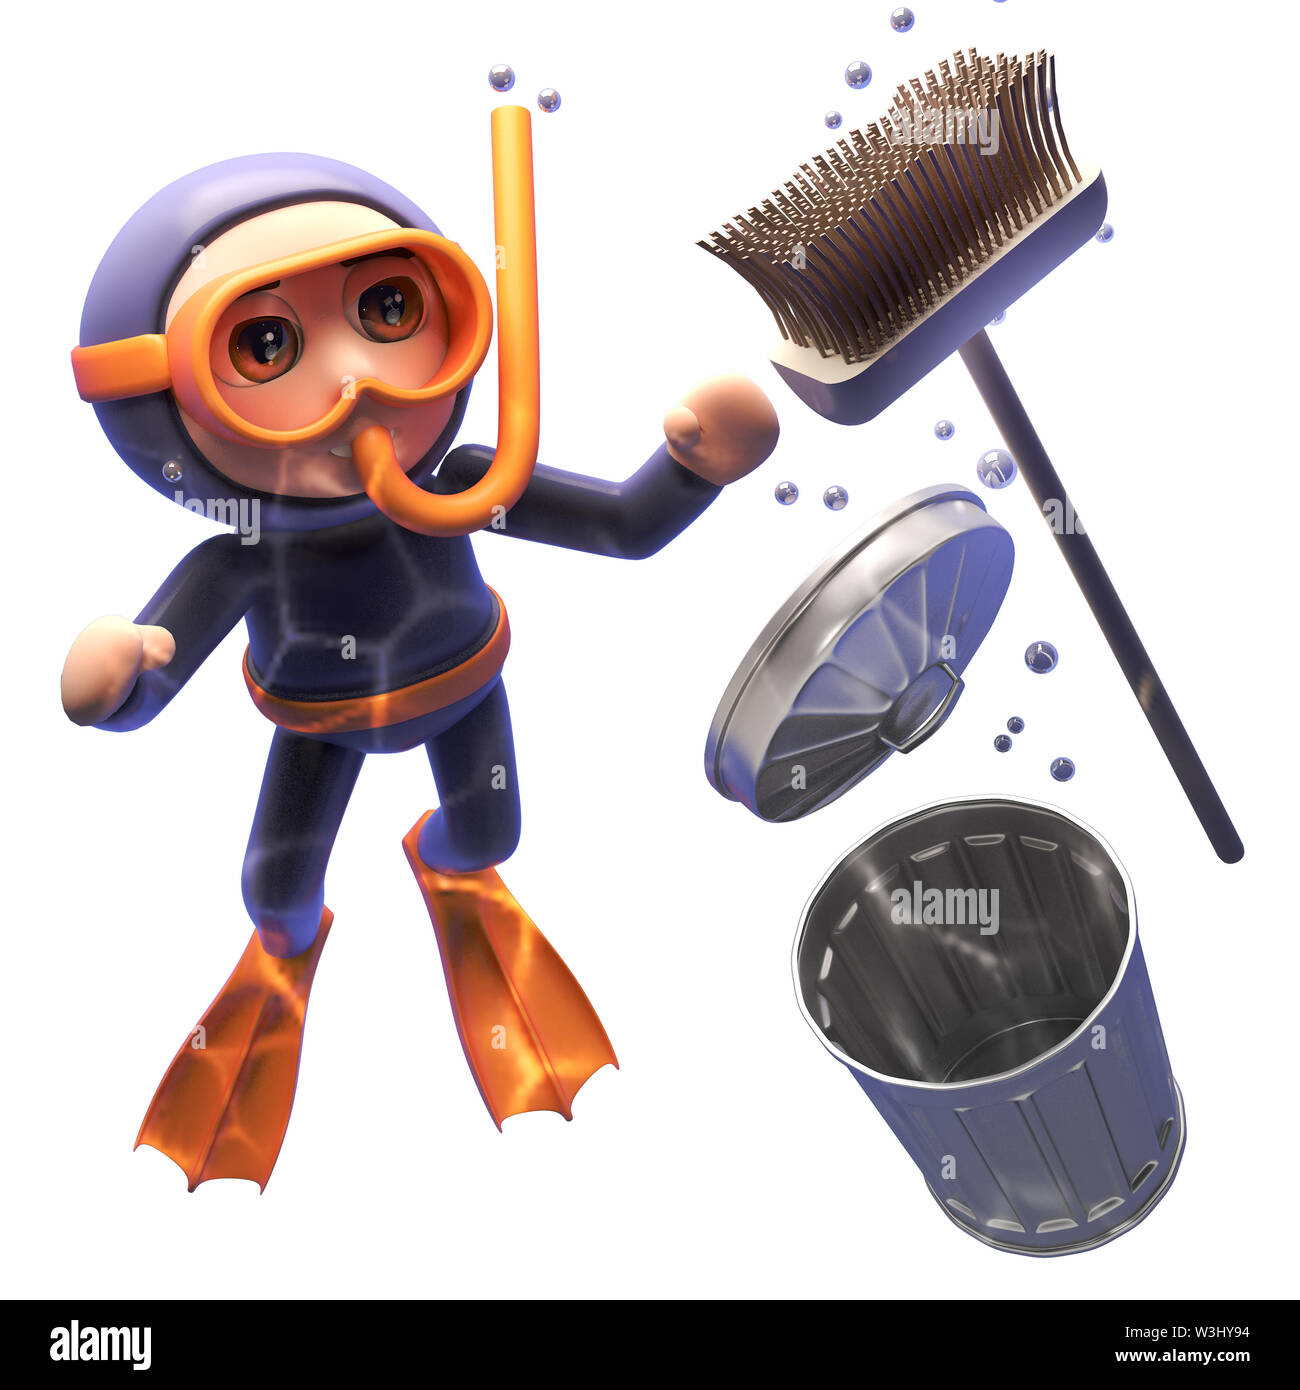 3d cartoon shocked snorkel scuba diver watches a broom and rubbish bin sink to the ocean floor, 3d illustration render - Stock Image